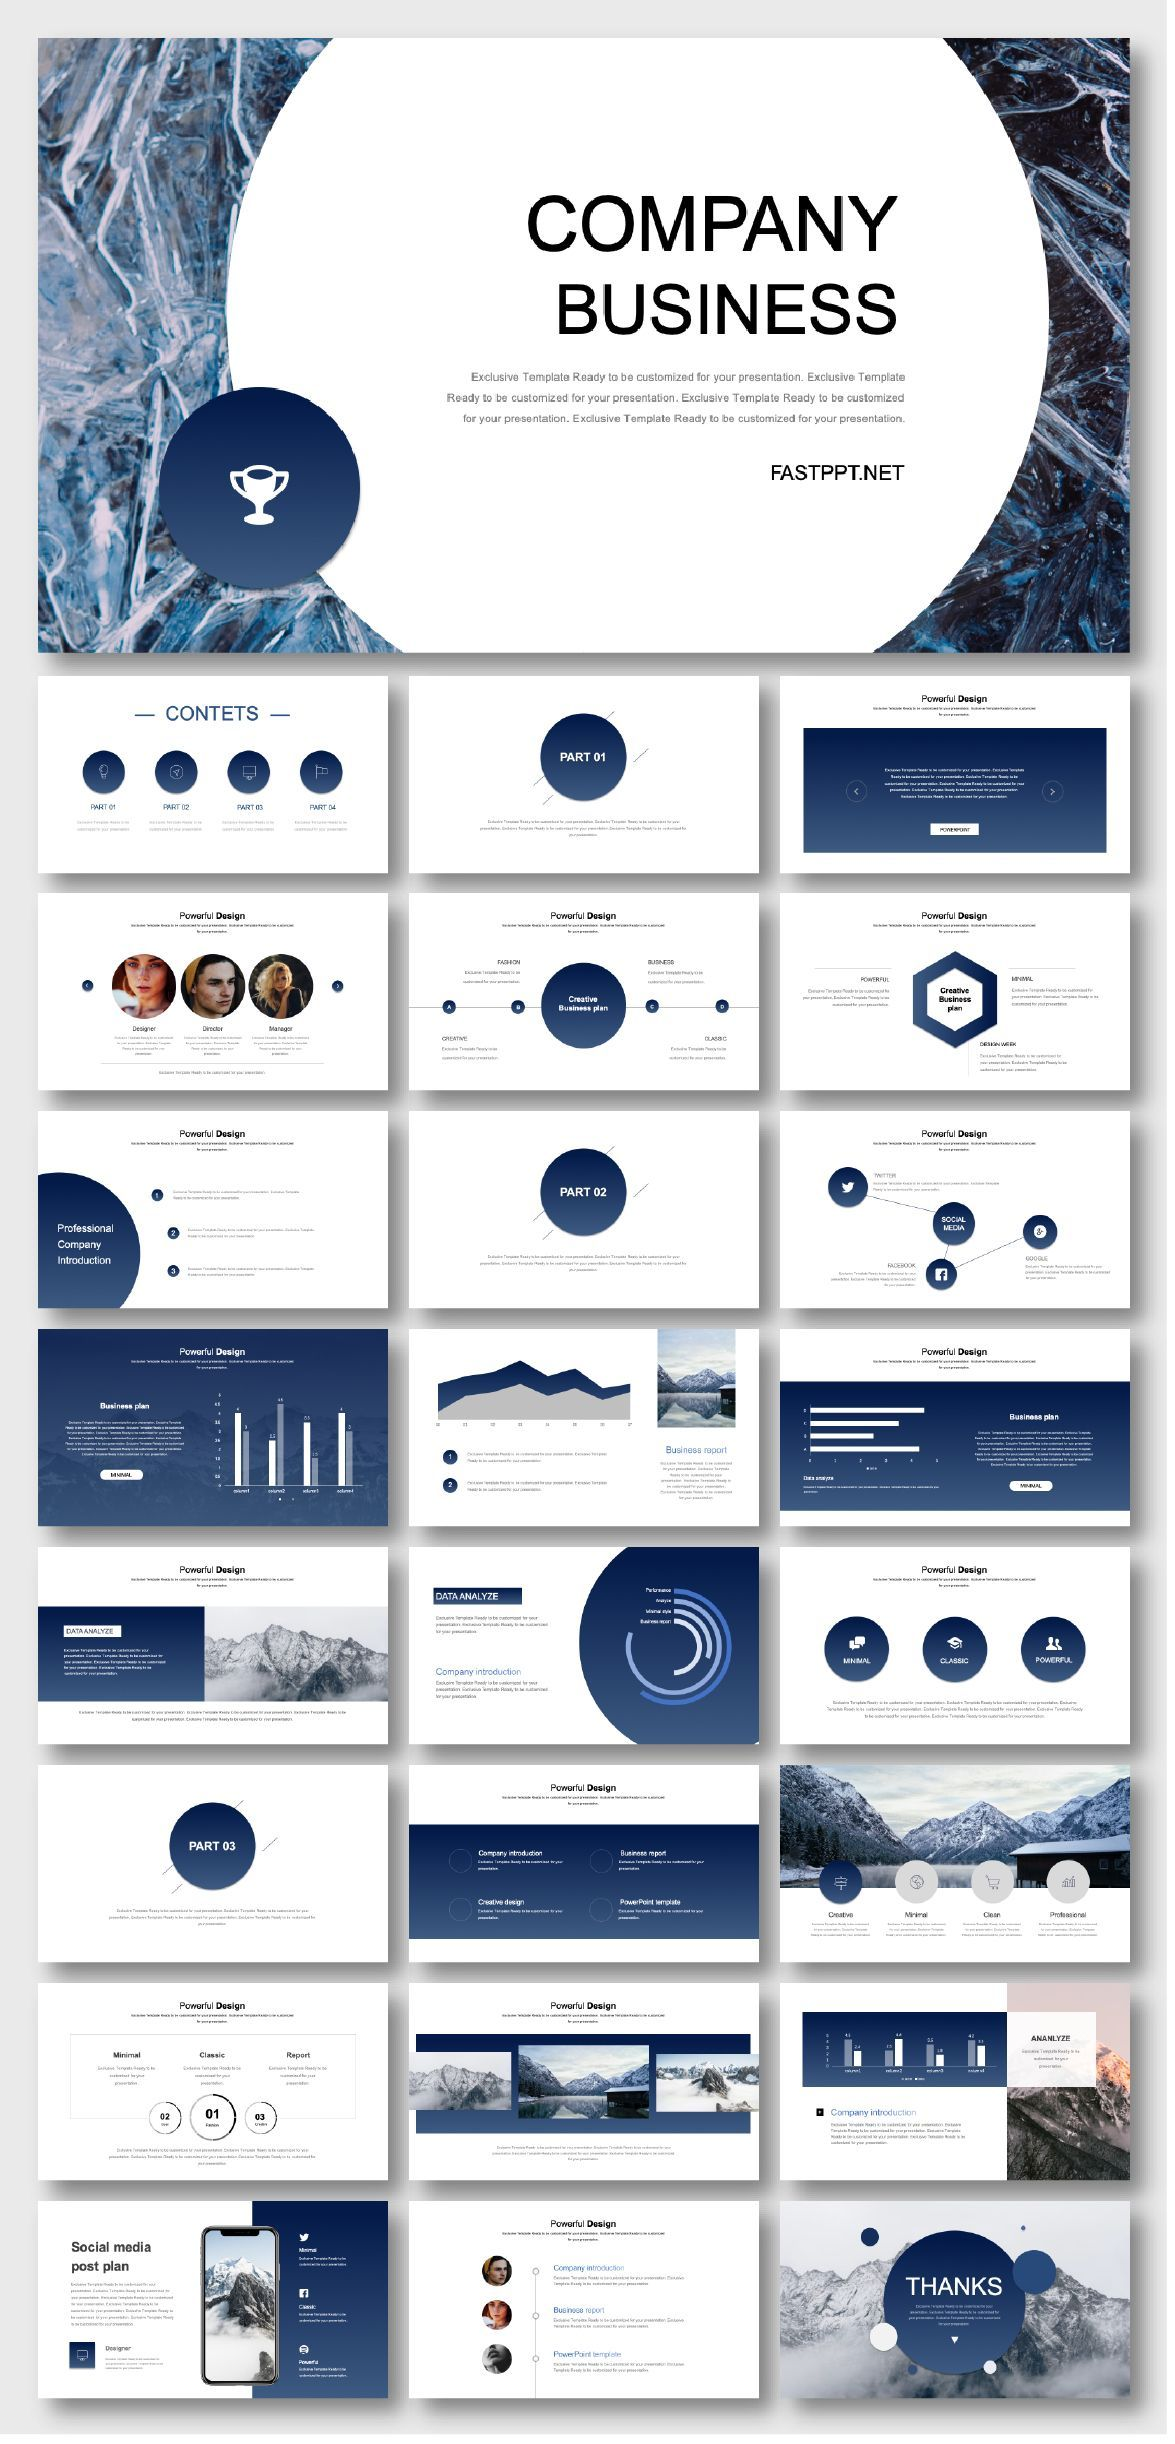 Powerpoint Powerpoint Presentation Fashion Powerpoint Design Template Ppt Art Simple In 2020 Powerpoint Prasentation Ppt Design Powerpoint Vorlagen